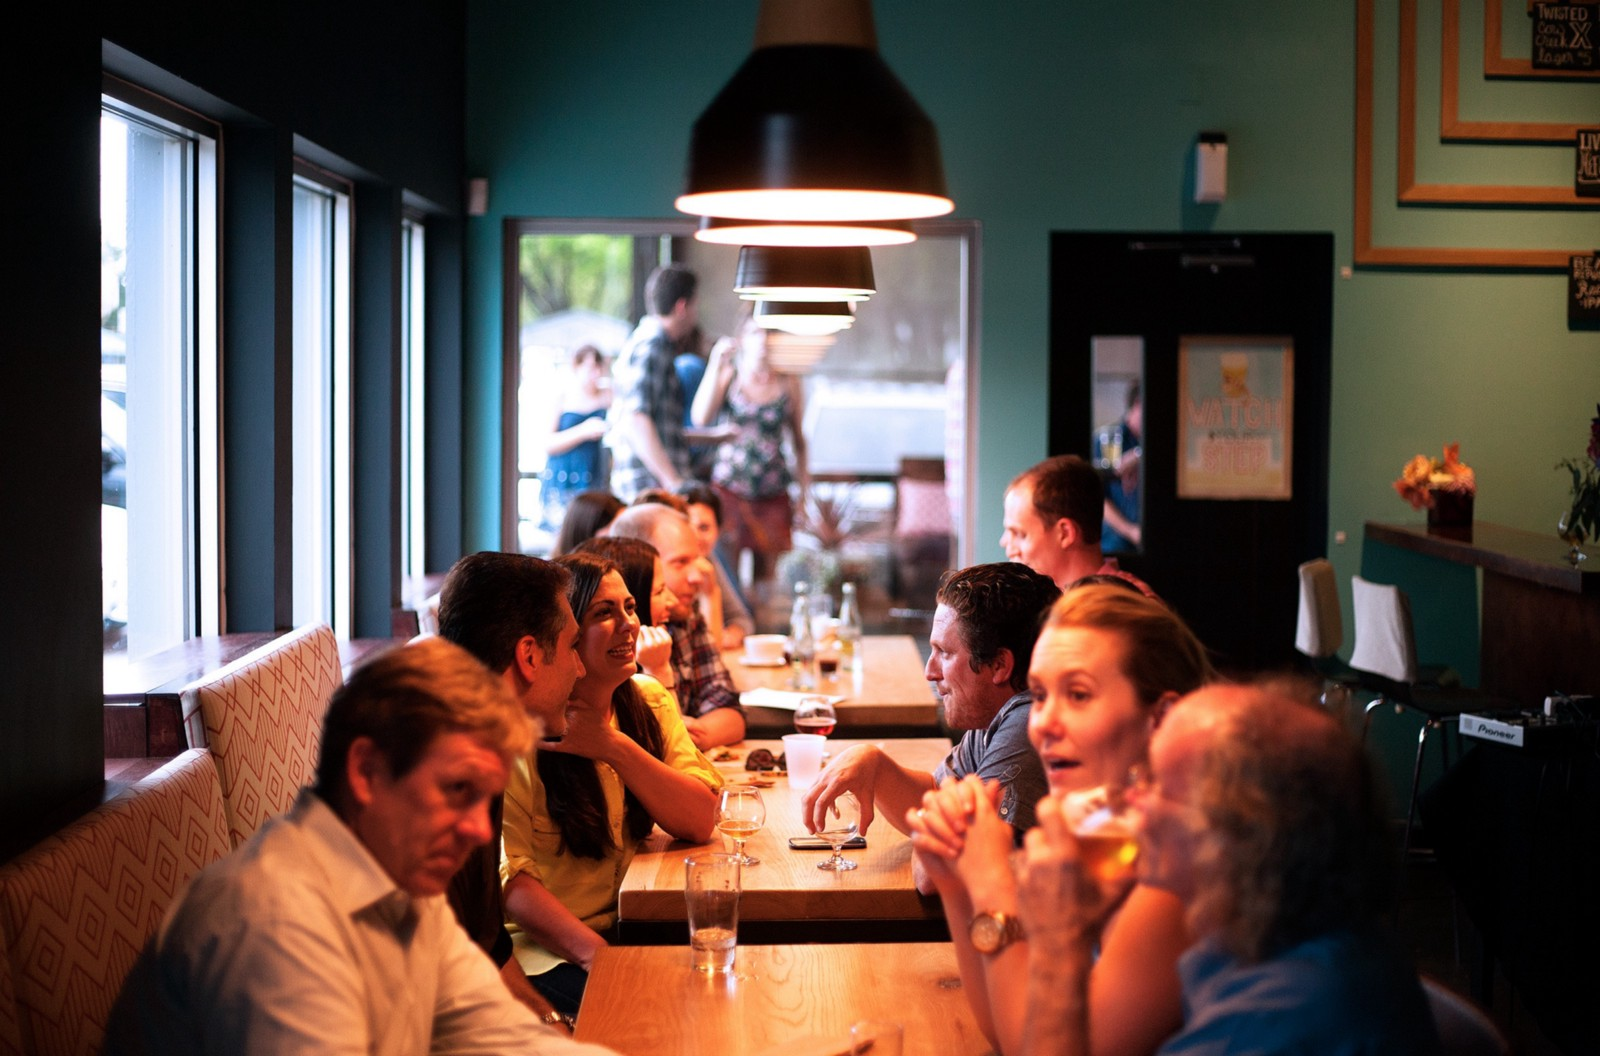 Study Dinner Organizers Struggling To Satisfy Every Friends Food - Restaurant table organizers